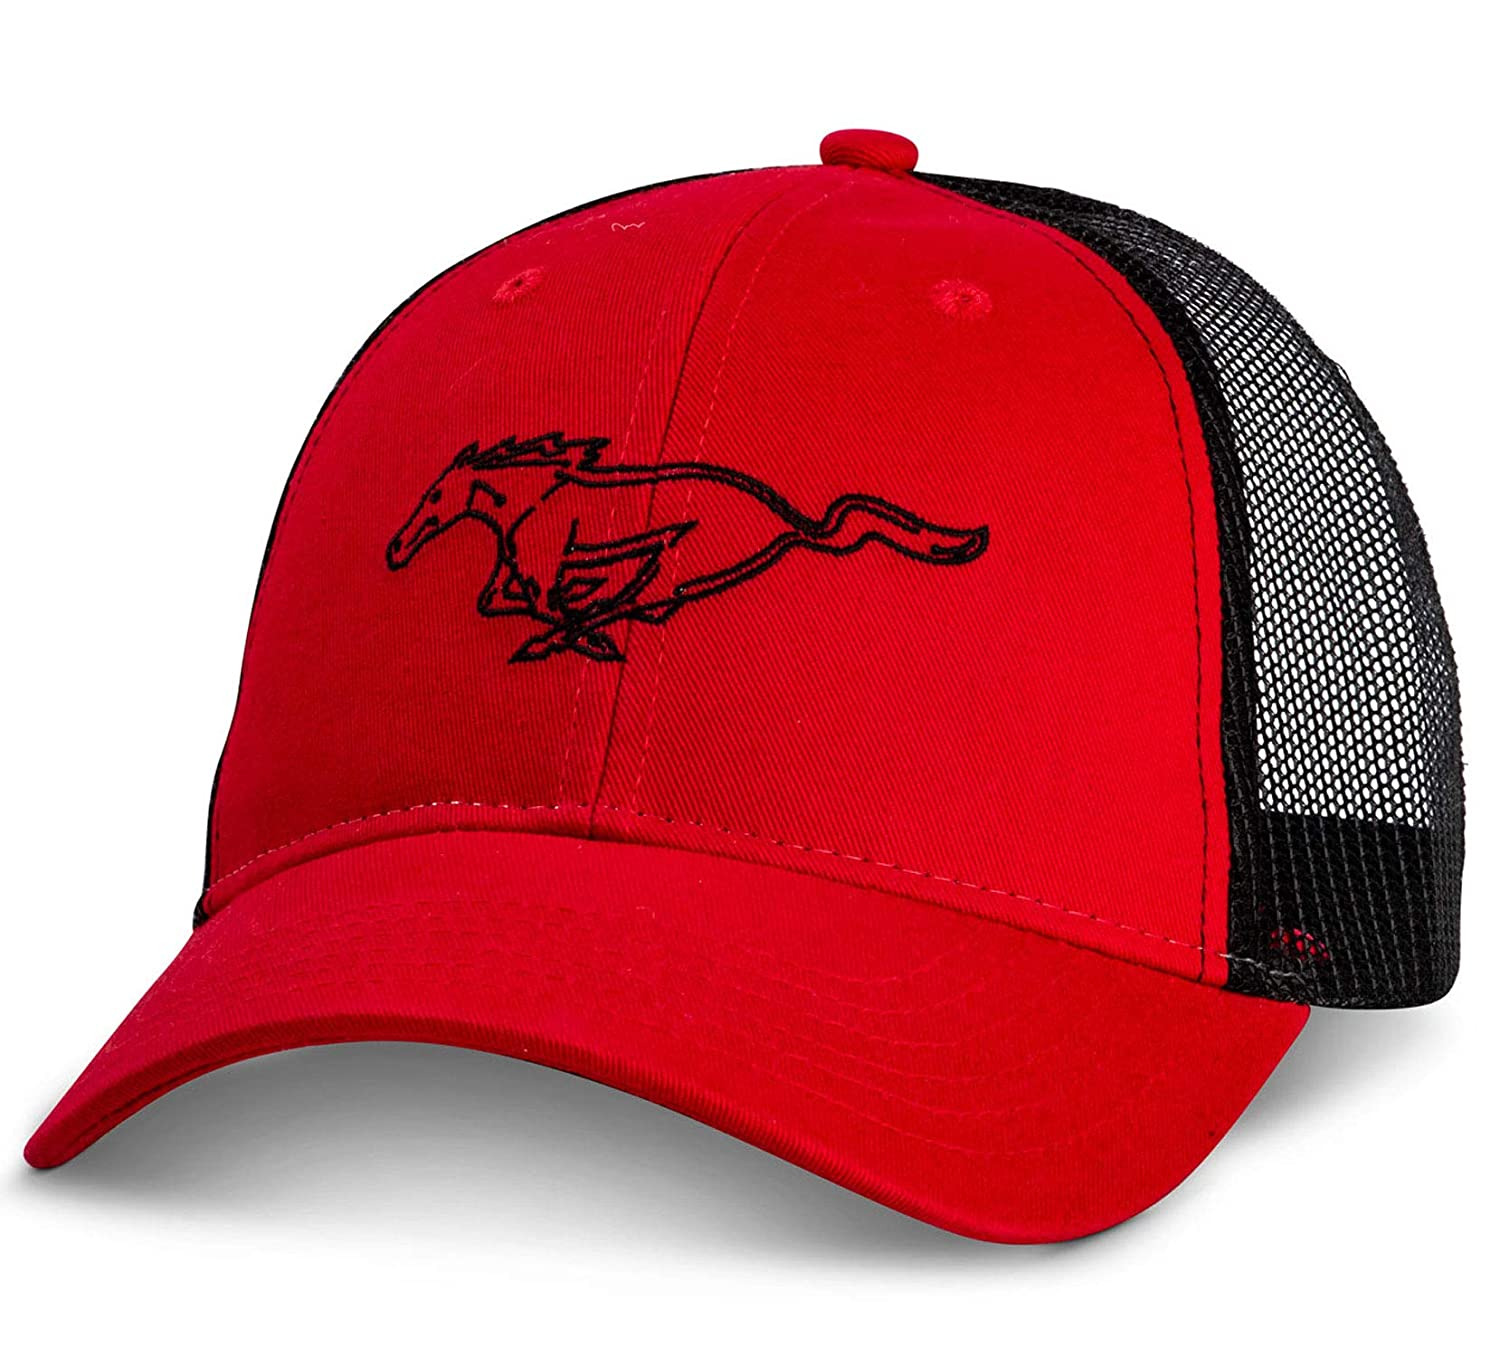 Bundle with Driving Style Decal Gregs Automotive Ford Mustang Mesh Back Red Hat Cap